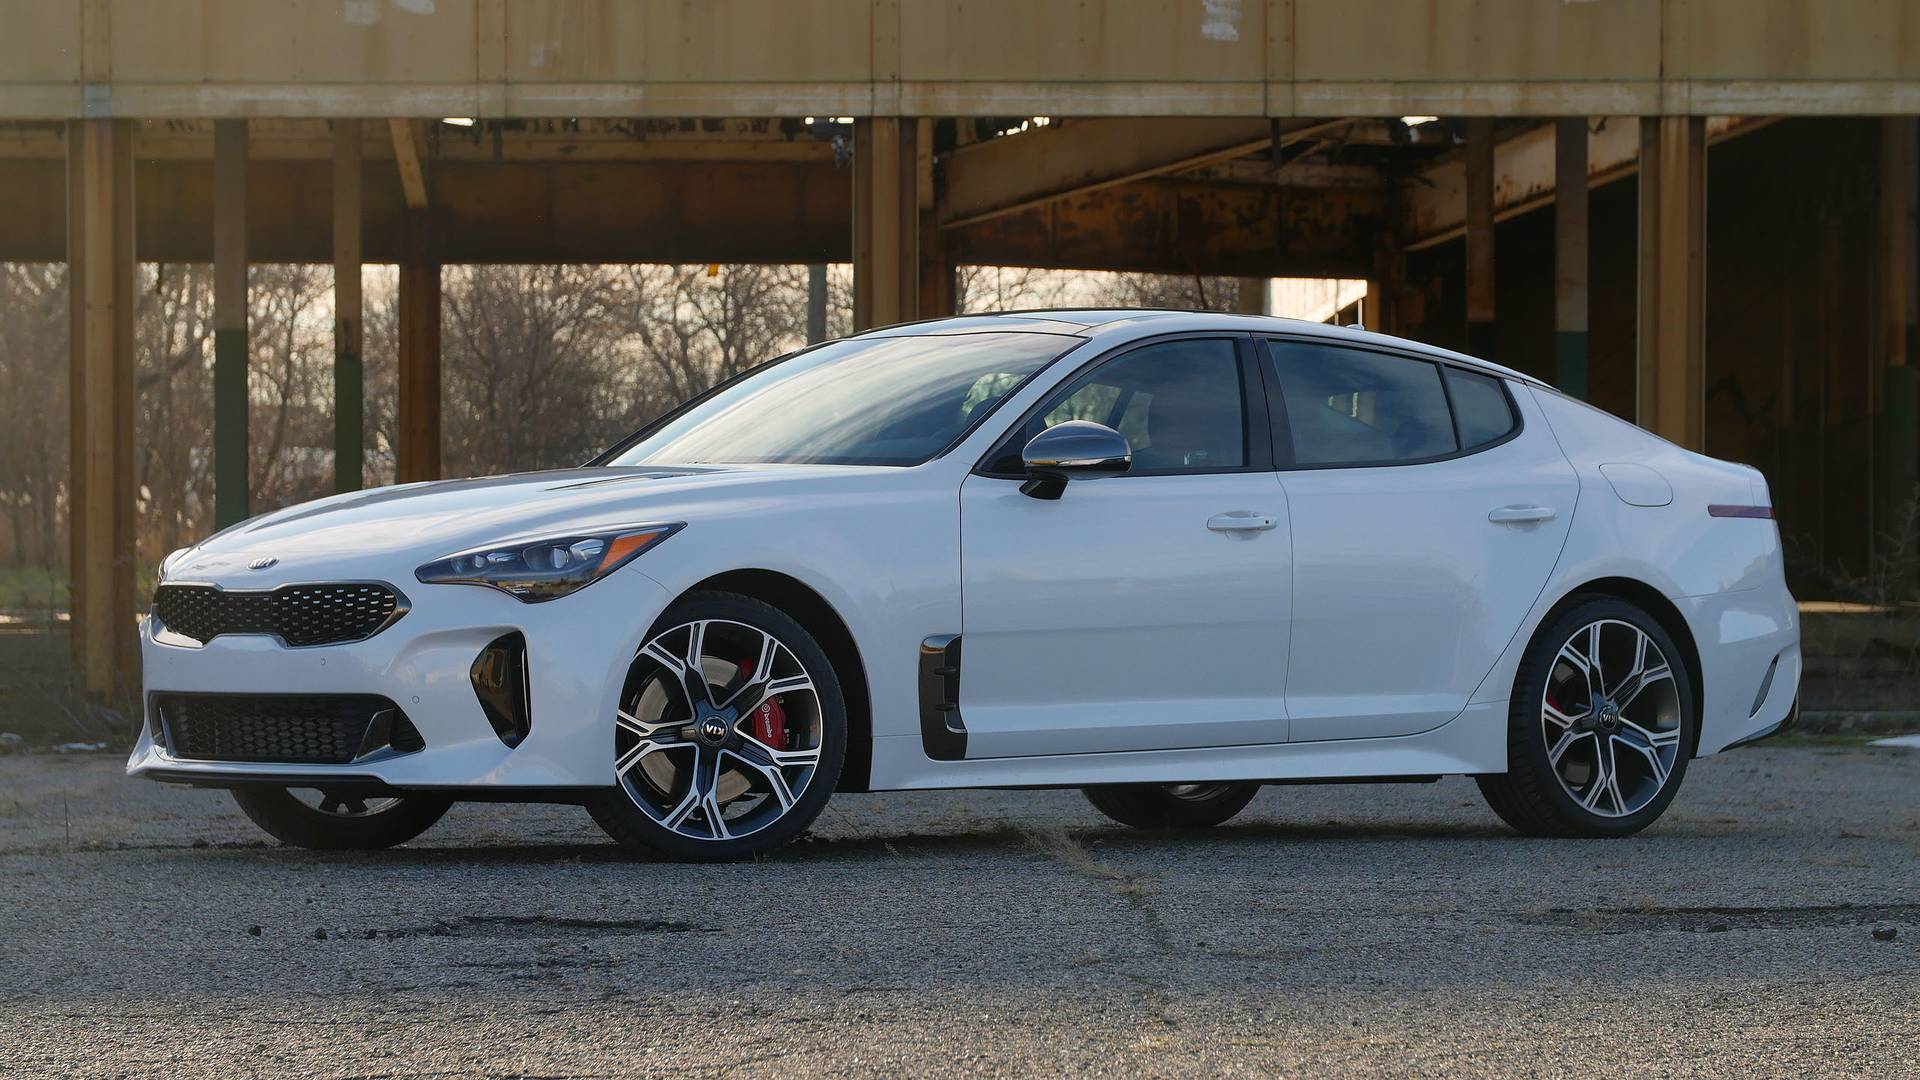 Kia Stinger Being Offered With $3,000 Secret Incentive